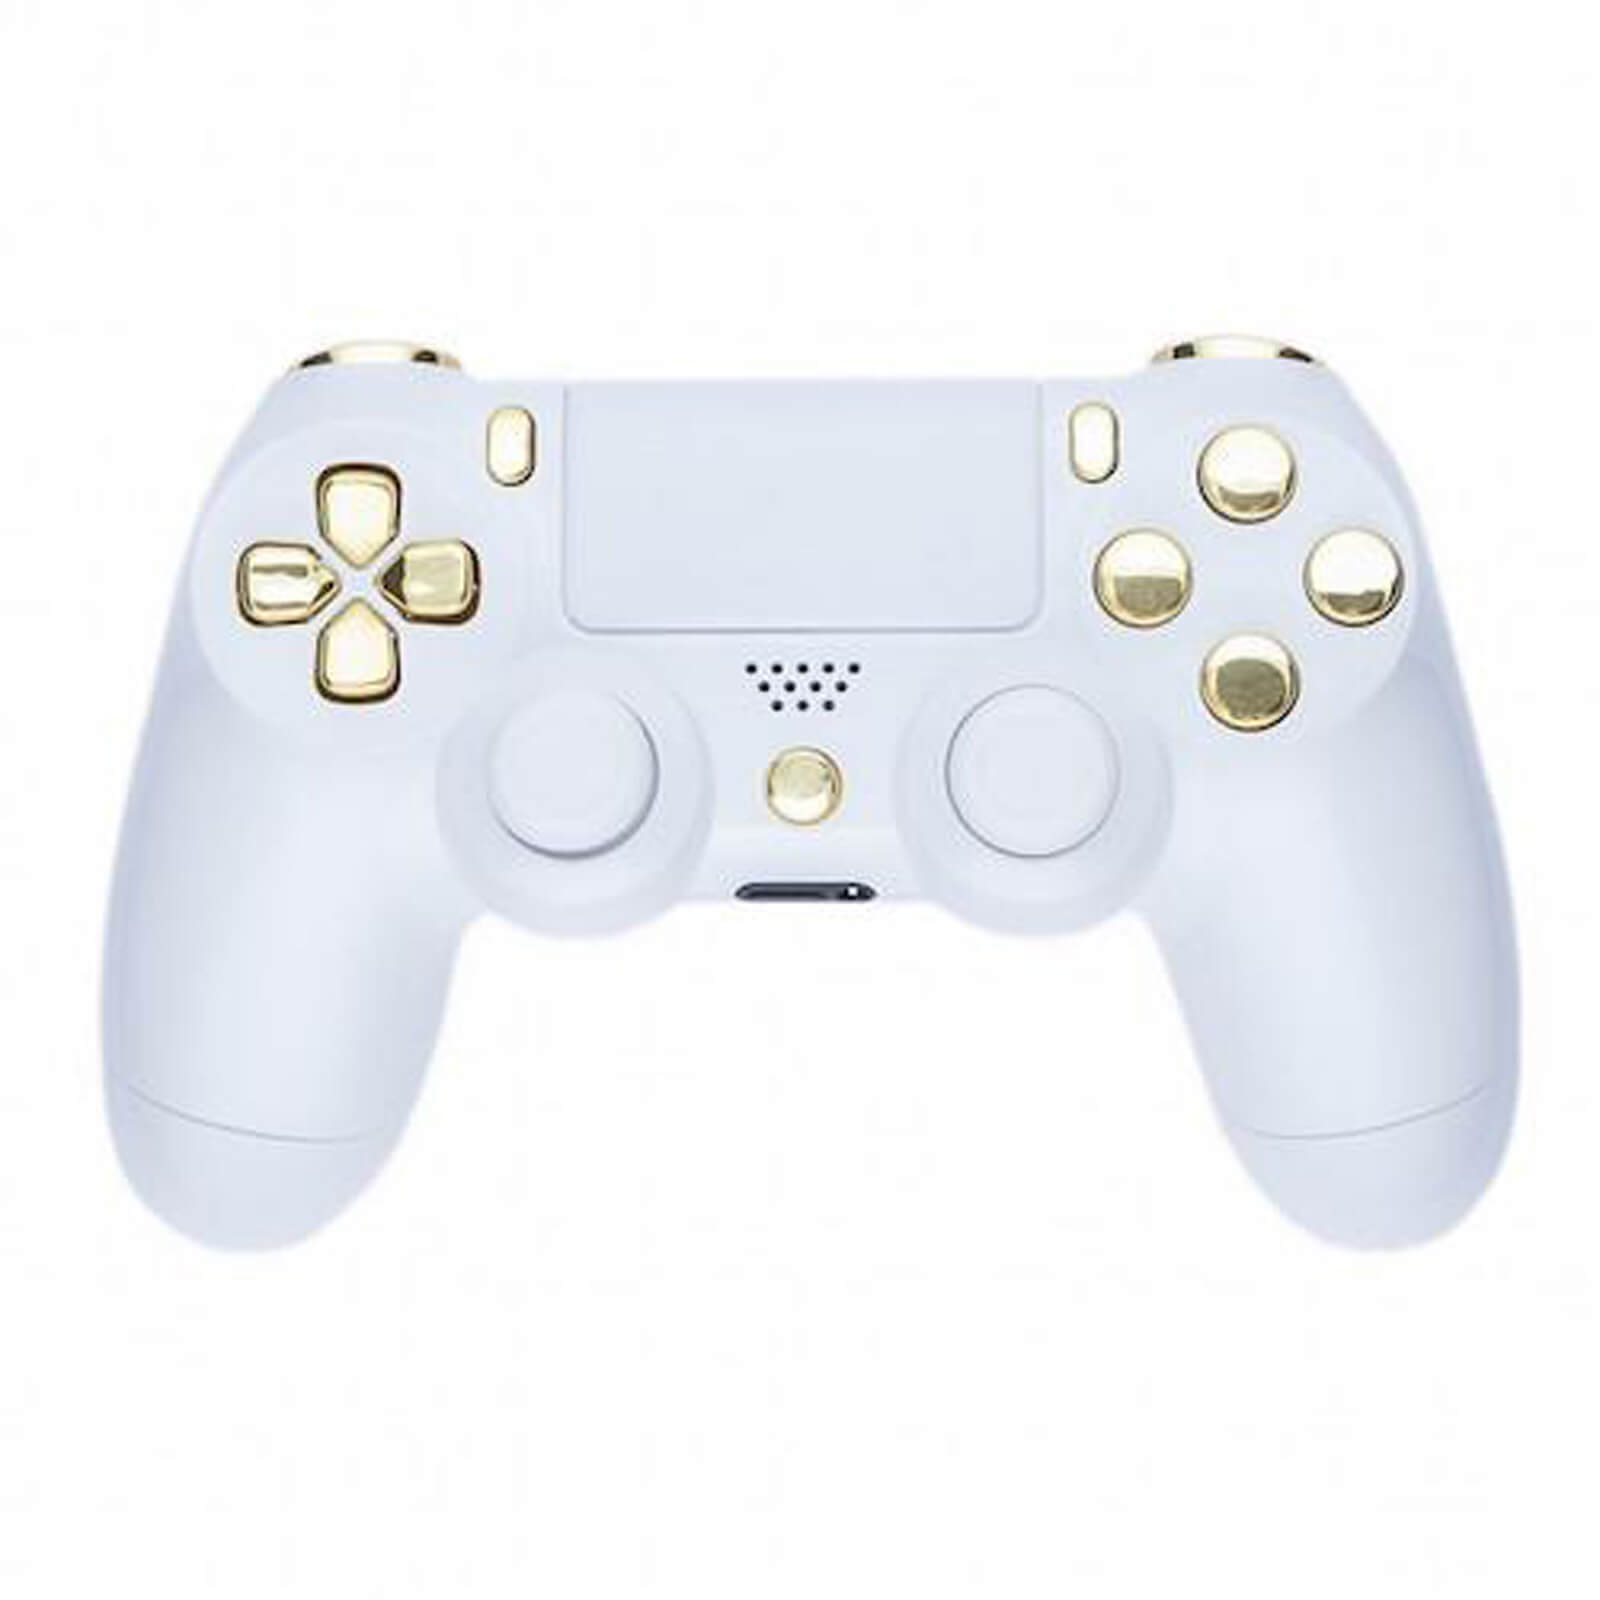 PlayStation 4 Controller - Piano White   Gold Games Accessories  fdc13dc694